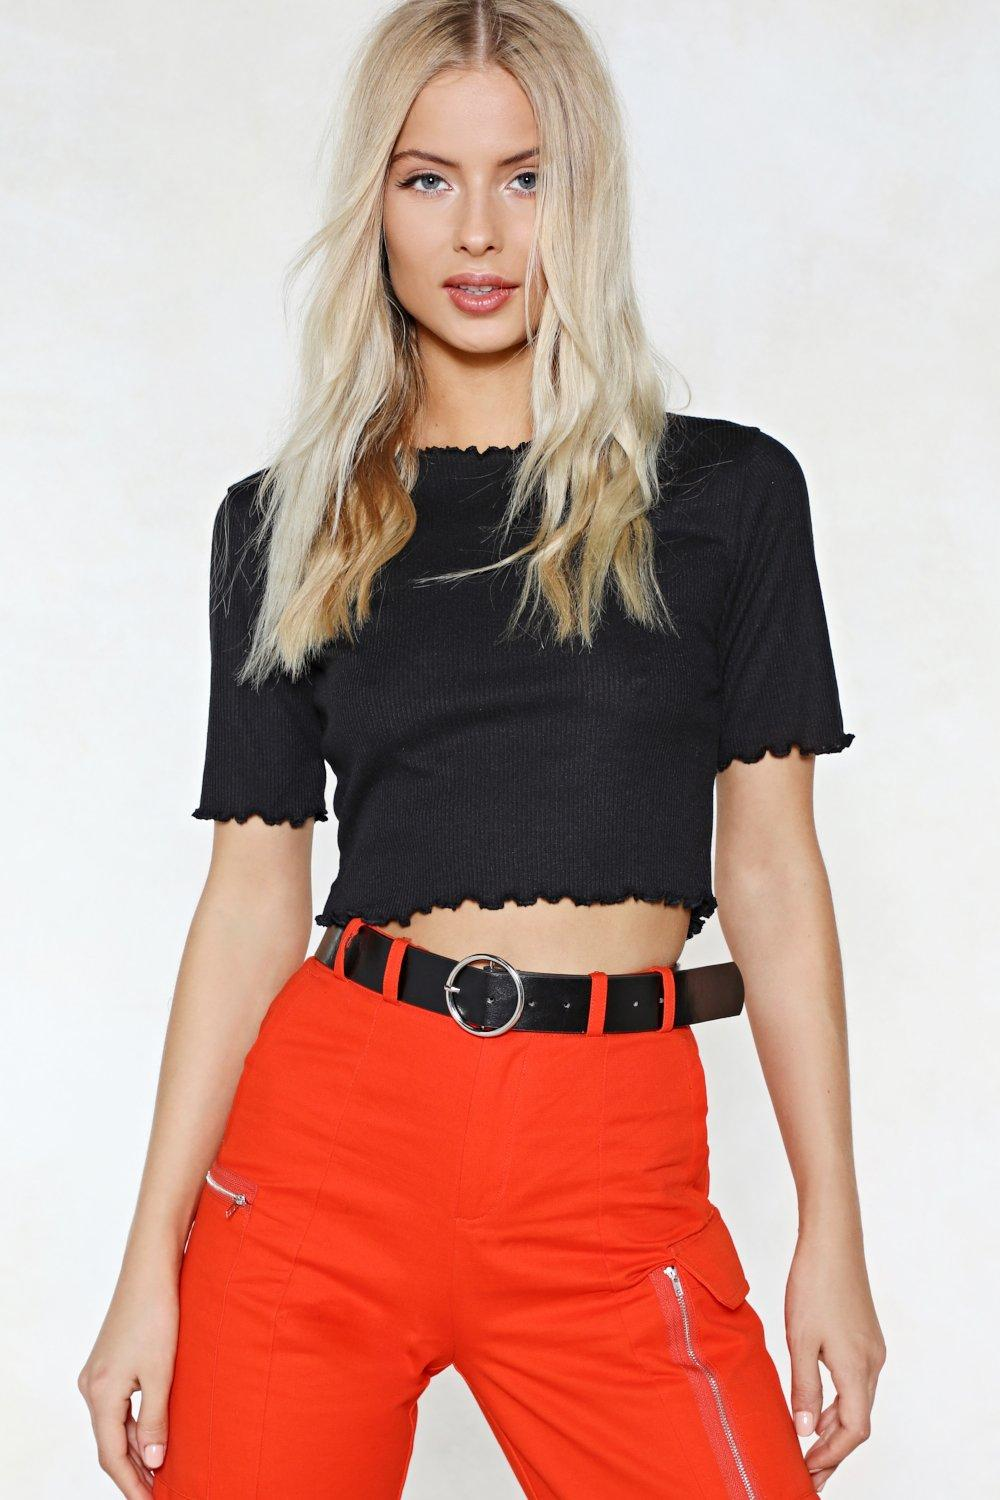 1d27c339831 Small Town Girl Crop Top | Shop Clothes at Nasty Gal!